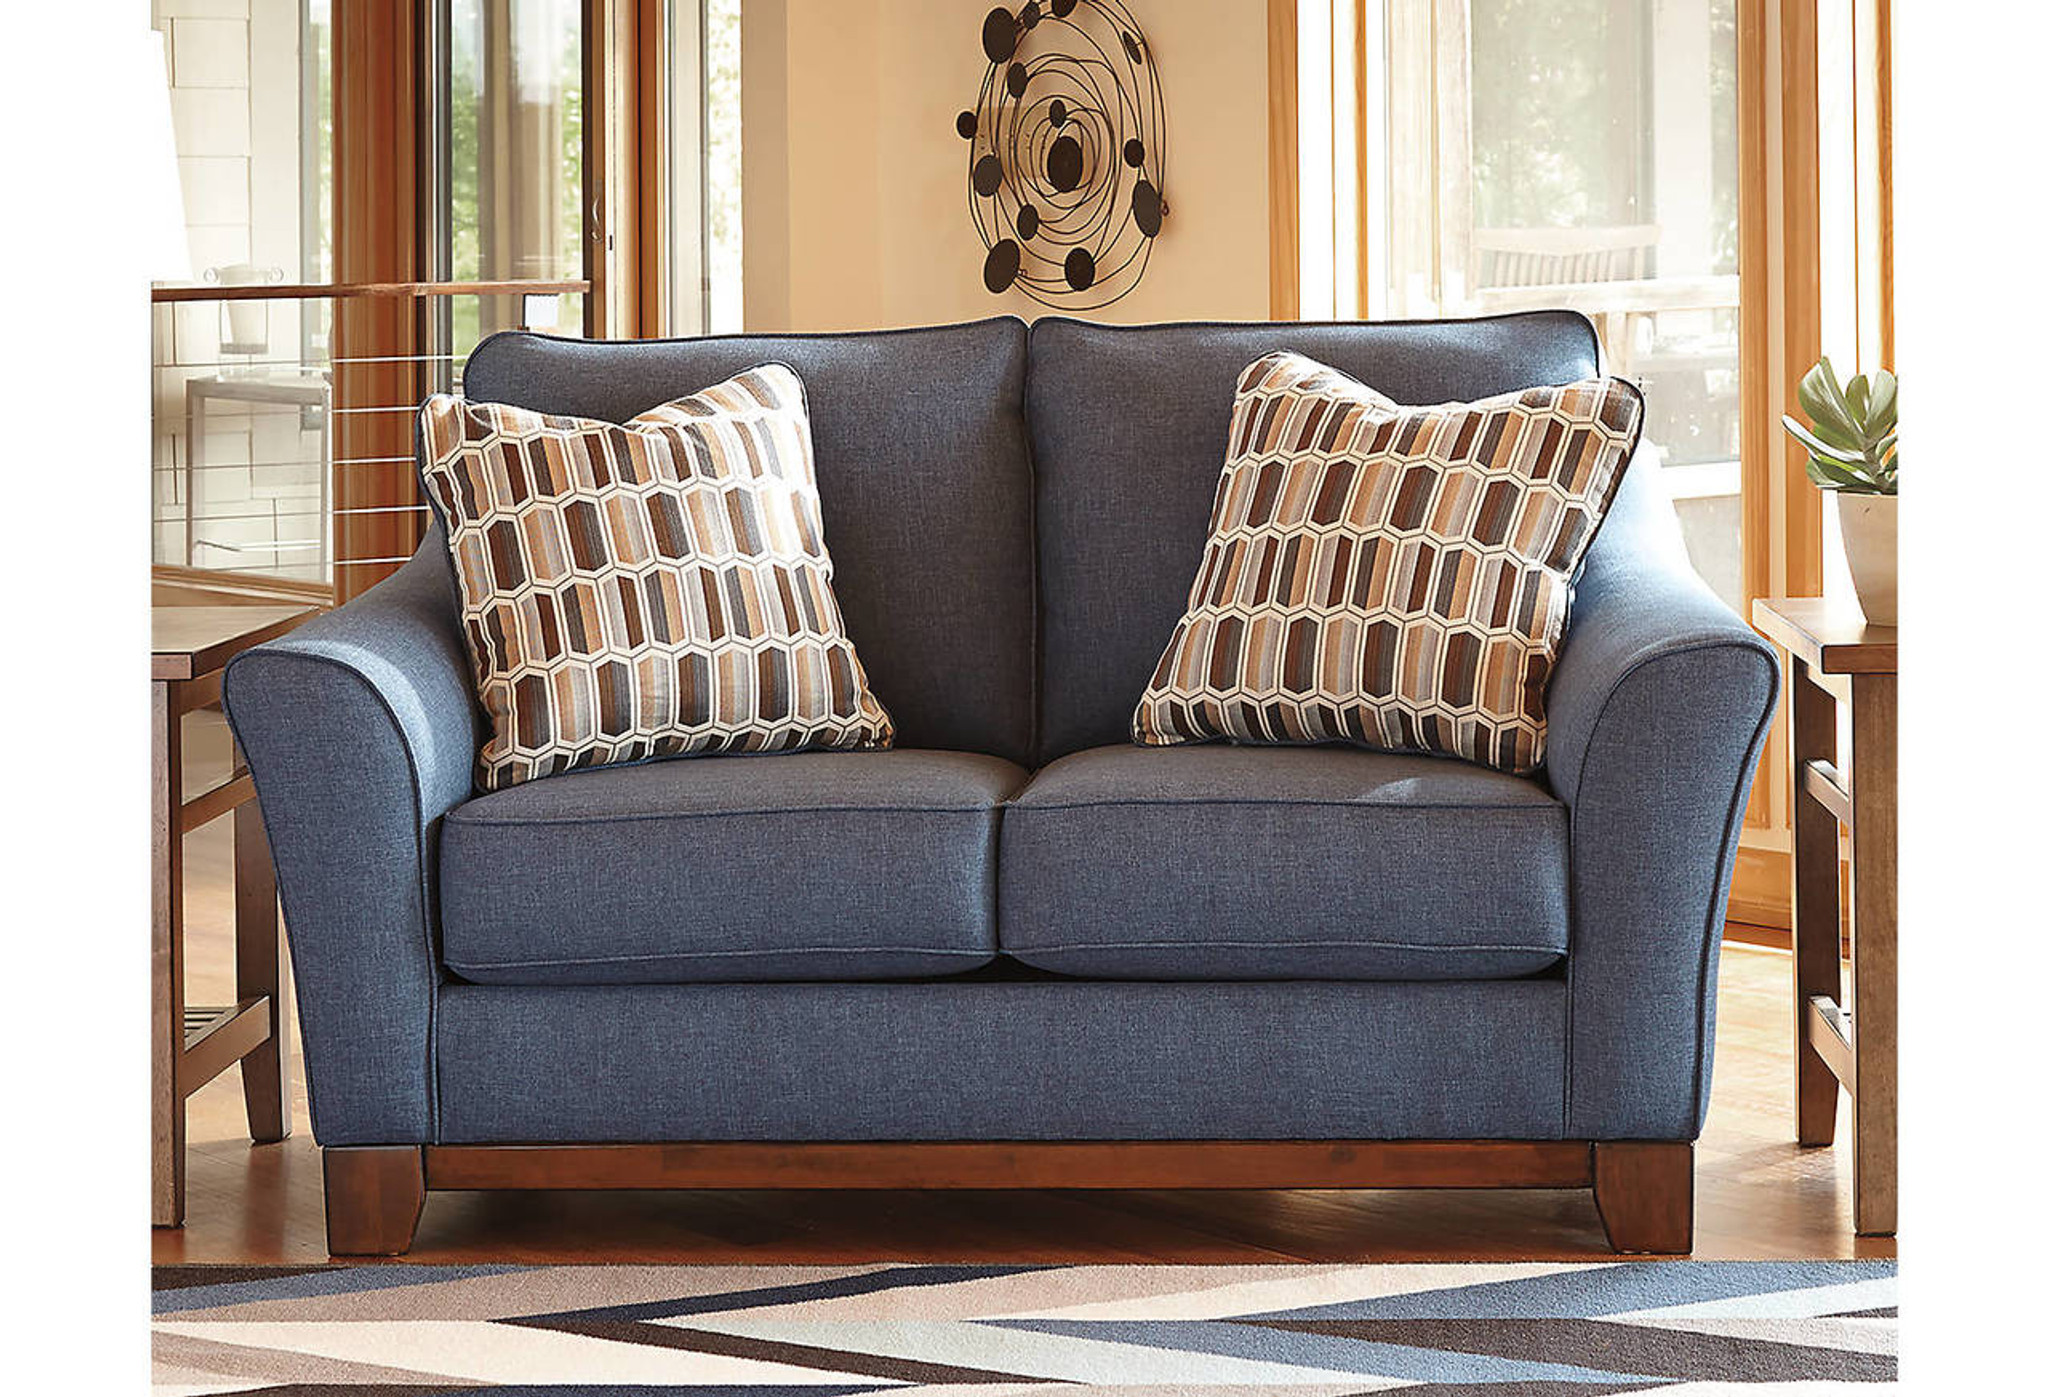 Picture of: 43807 38 35 Janley Denim Collection Sofa And Love Seat 2 Pcs Set Collection By Ashley Furniture